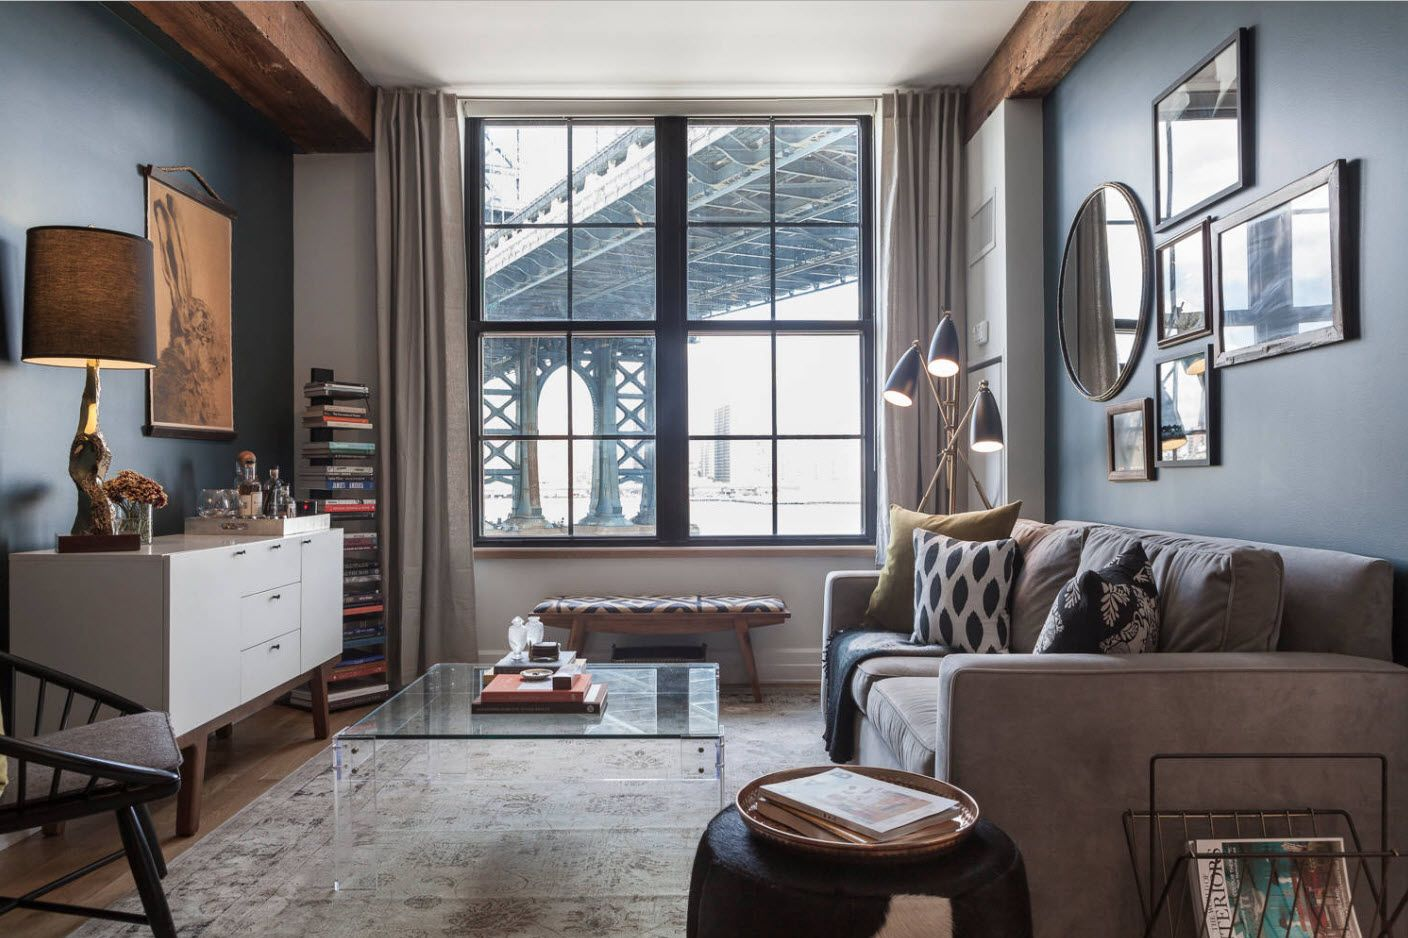 Modern classic atmosphere with lattice windows and wooden loft inlays